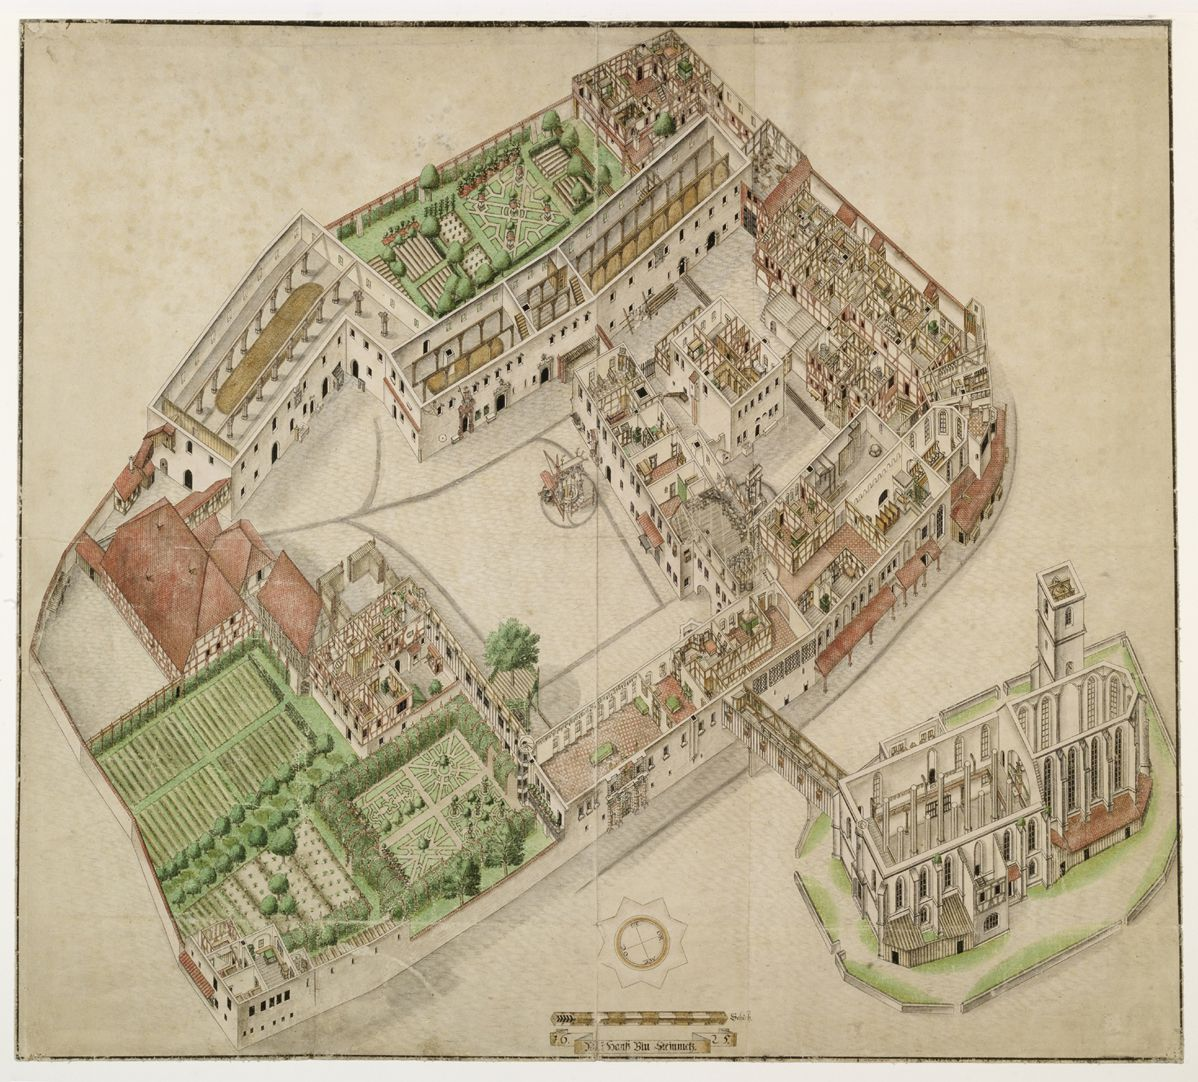 Isometric Picture of the whole plant of the German House in Nuremberg with view from the bird´s eye into the upper floors Entire estate. This is the most exact inventory of an architectural complex that has been delivered to posterity so far